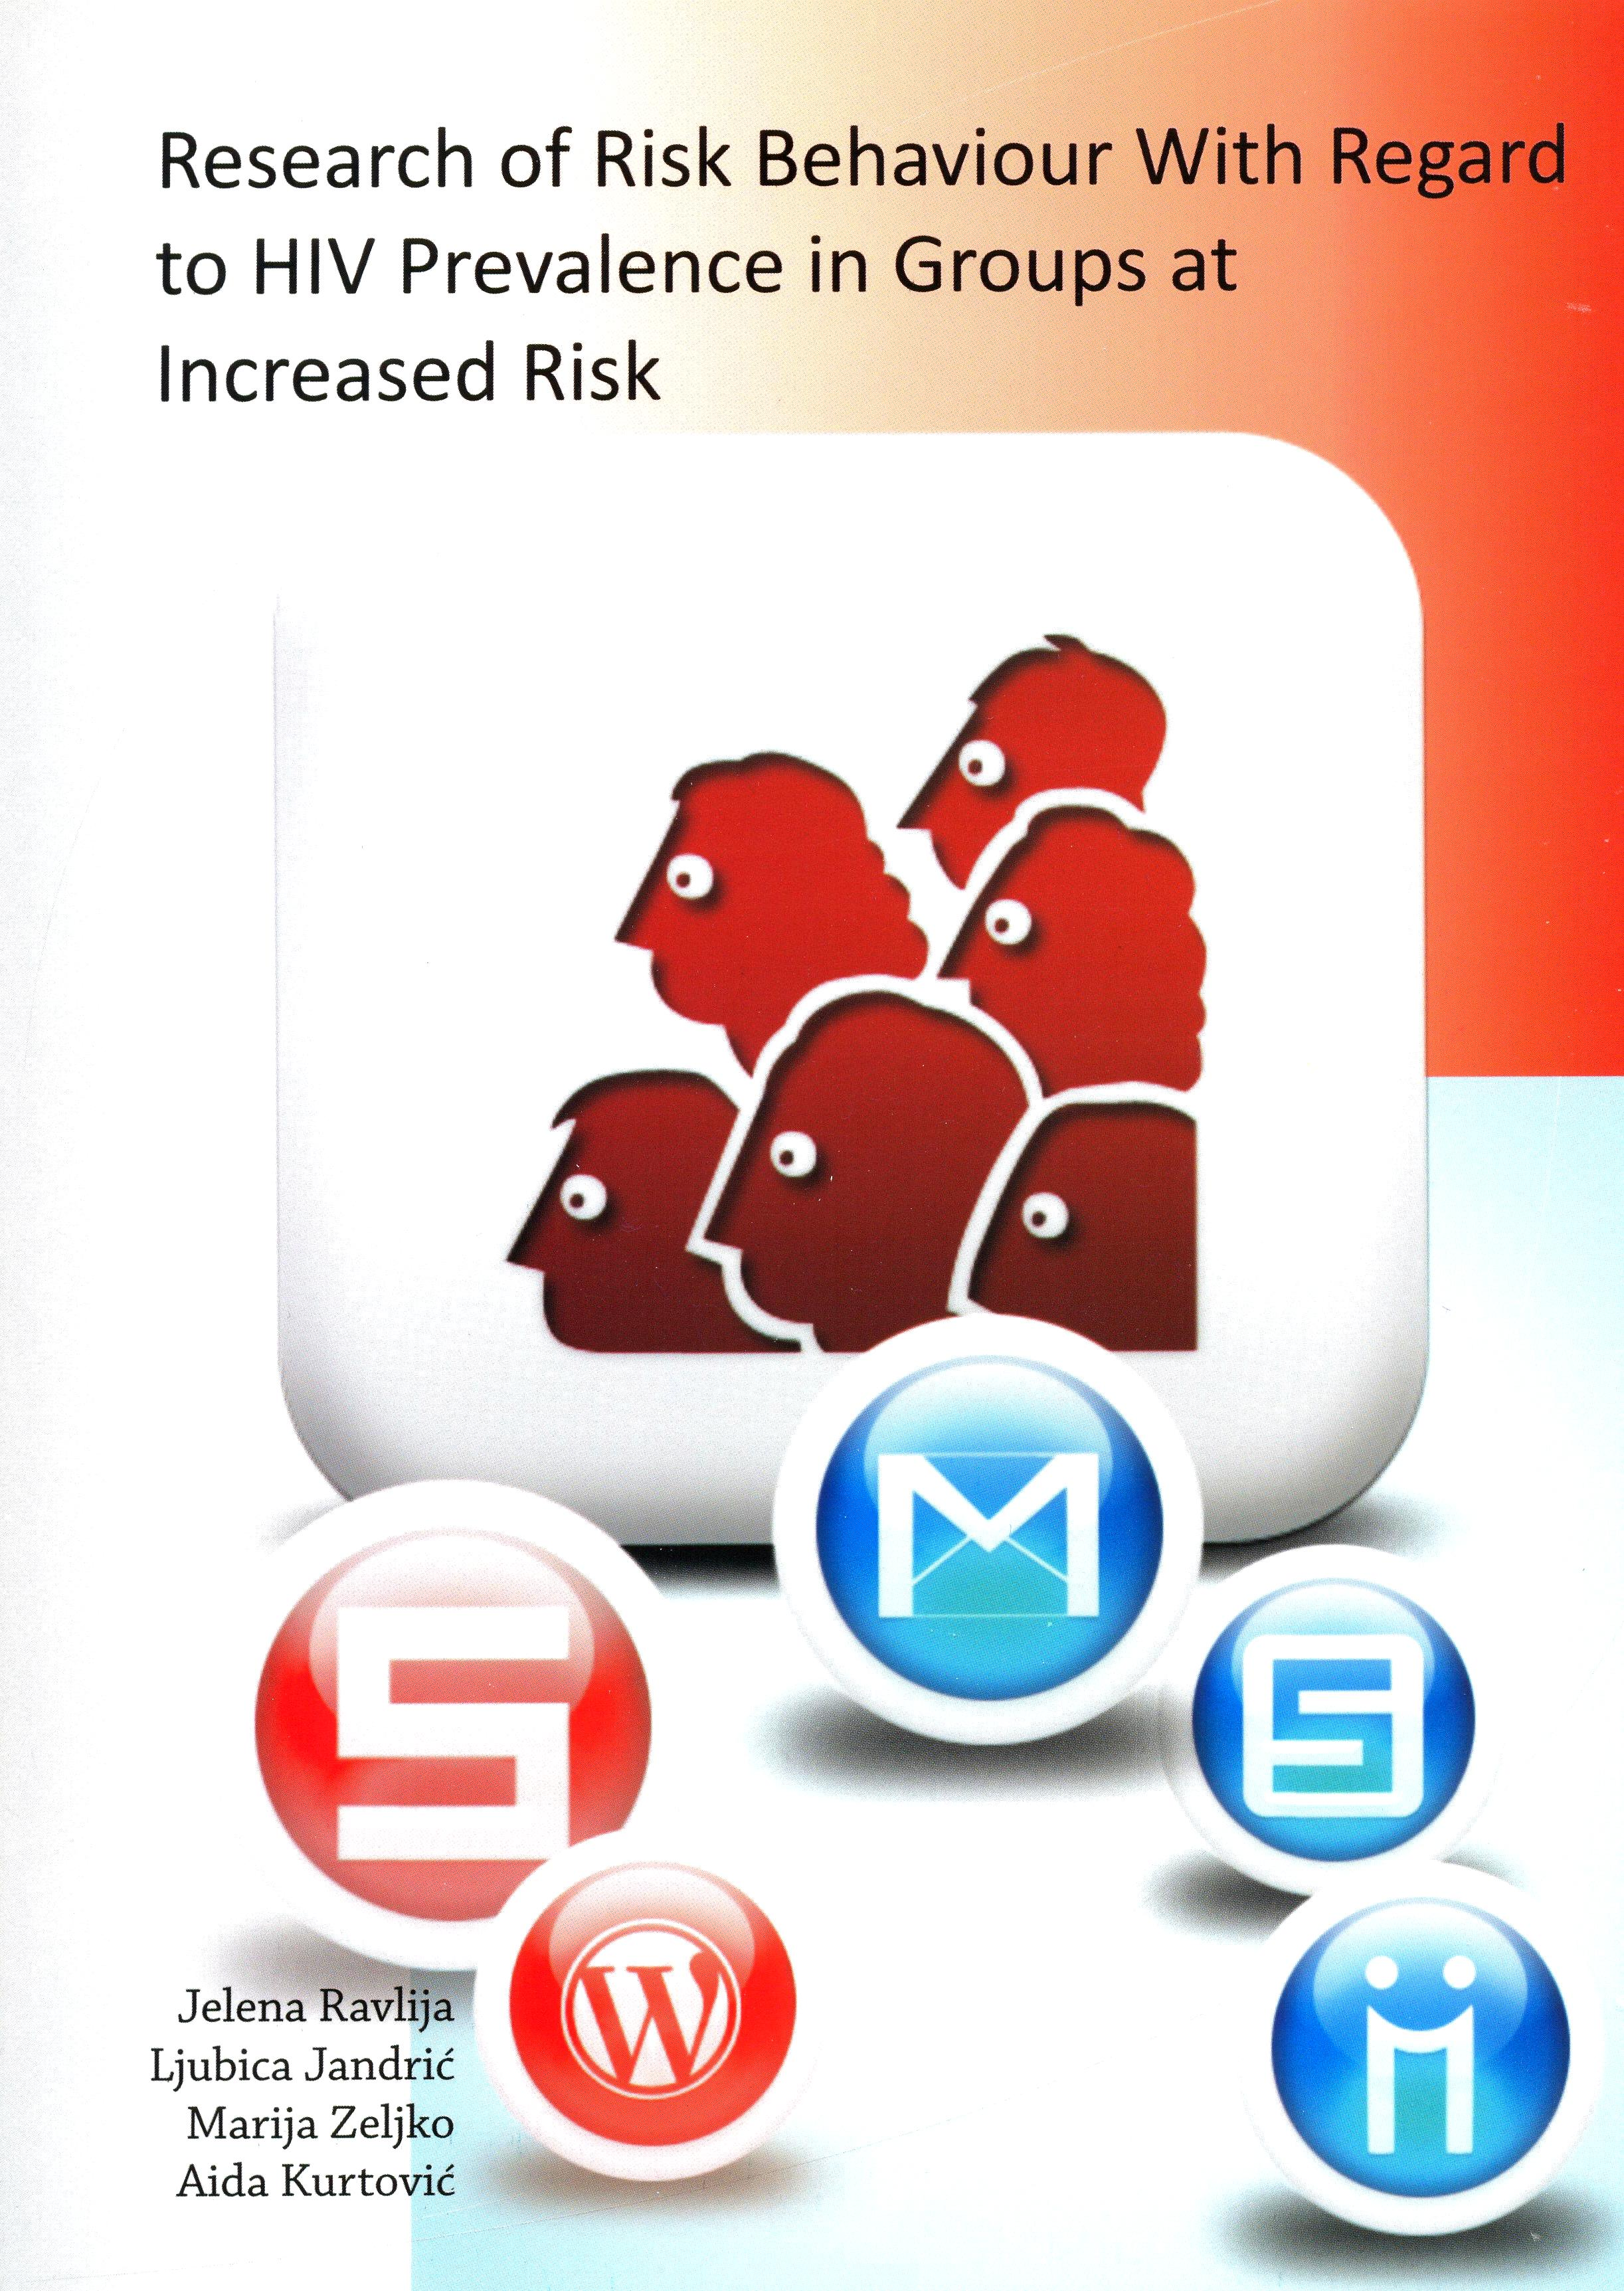 Research of Risk Behaviour With Regard to HIV Prevalence in Groups at Increased Risk, 2010.